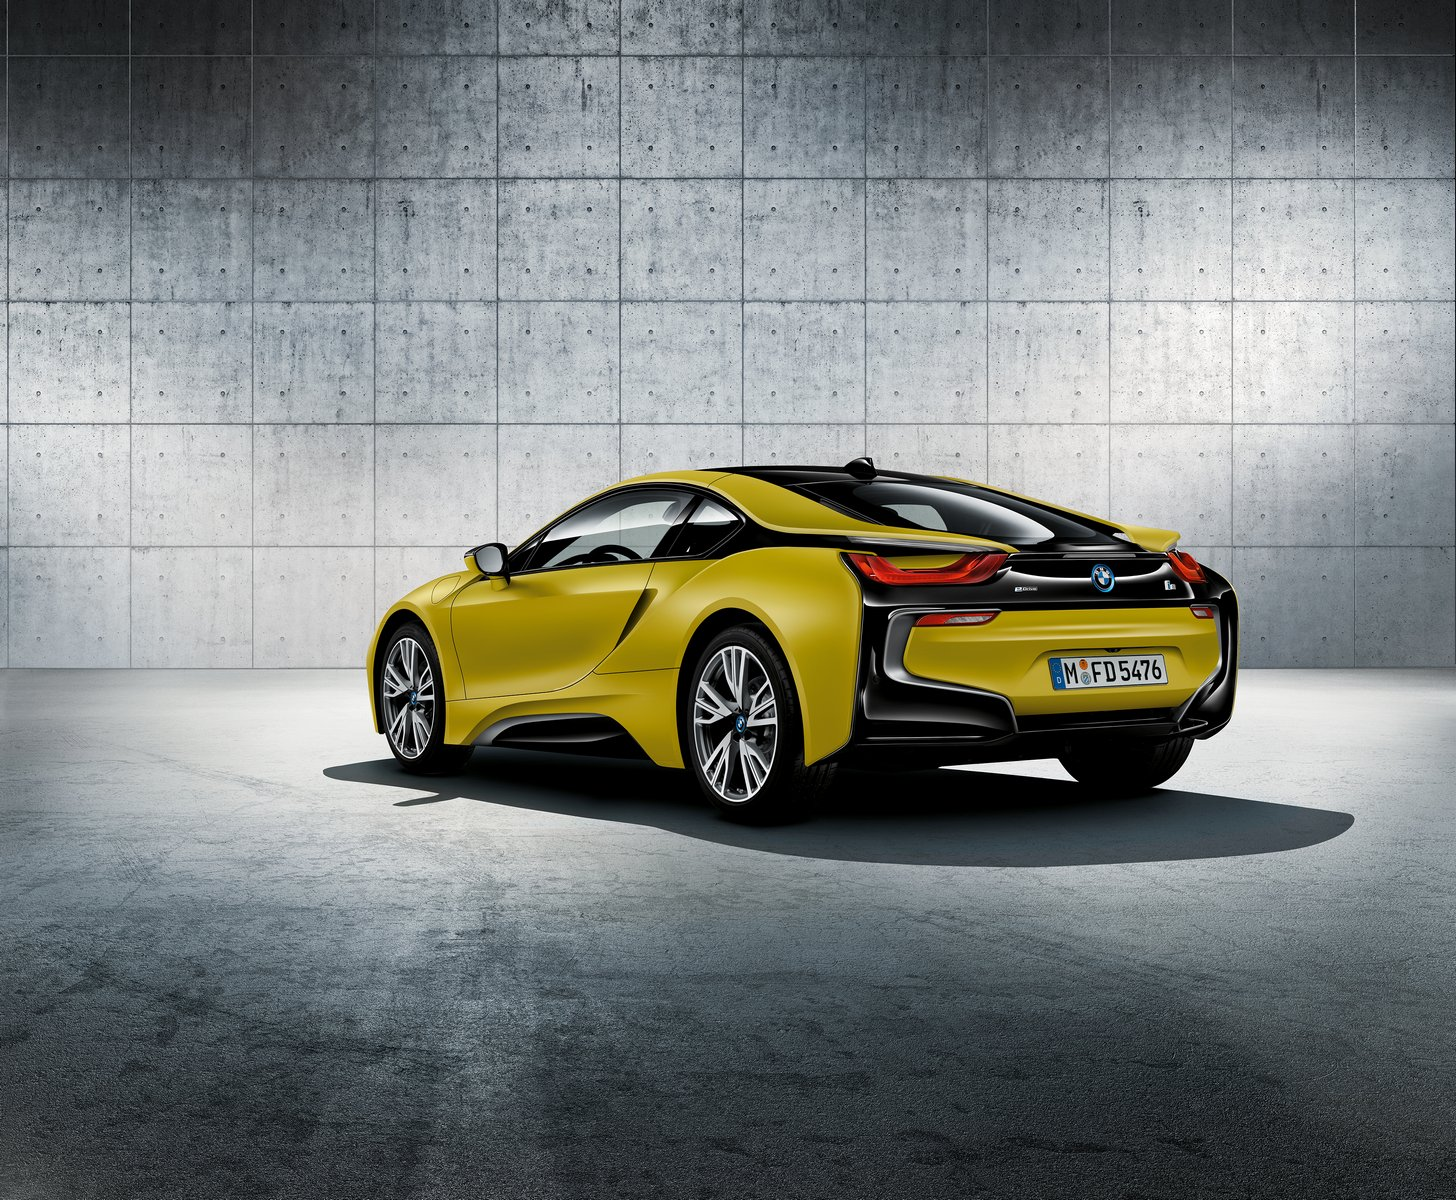 bmw i8 protonic frozen yellow edition unveiled ahead of shanghai carscoops. Black Bedroom Furniture Sets. Home Design Ideas